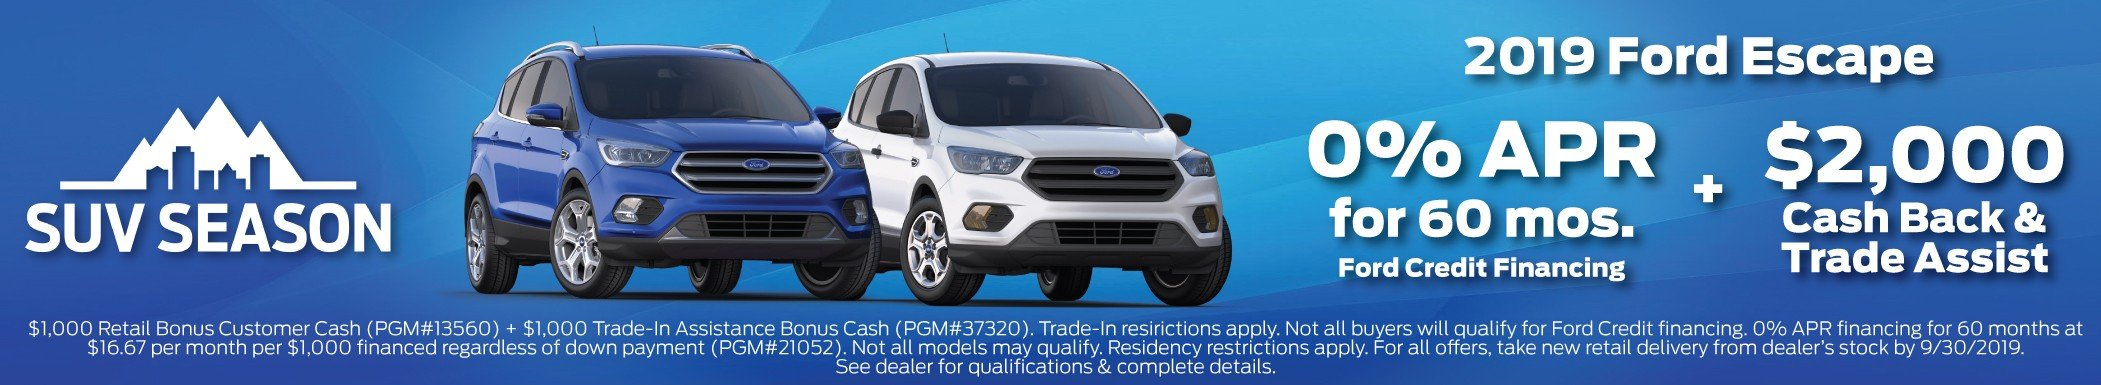 2019 Ford Escape Offer 9-30-2019